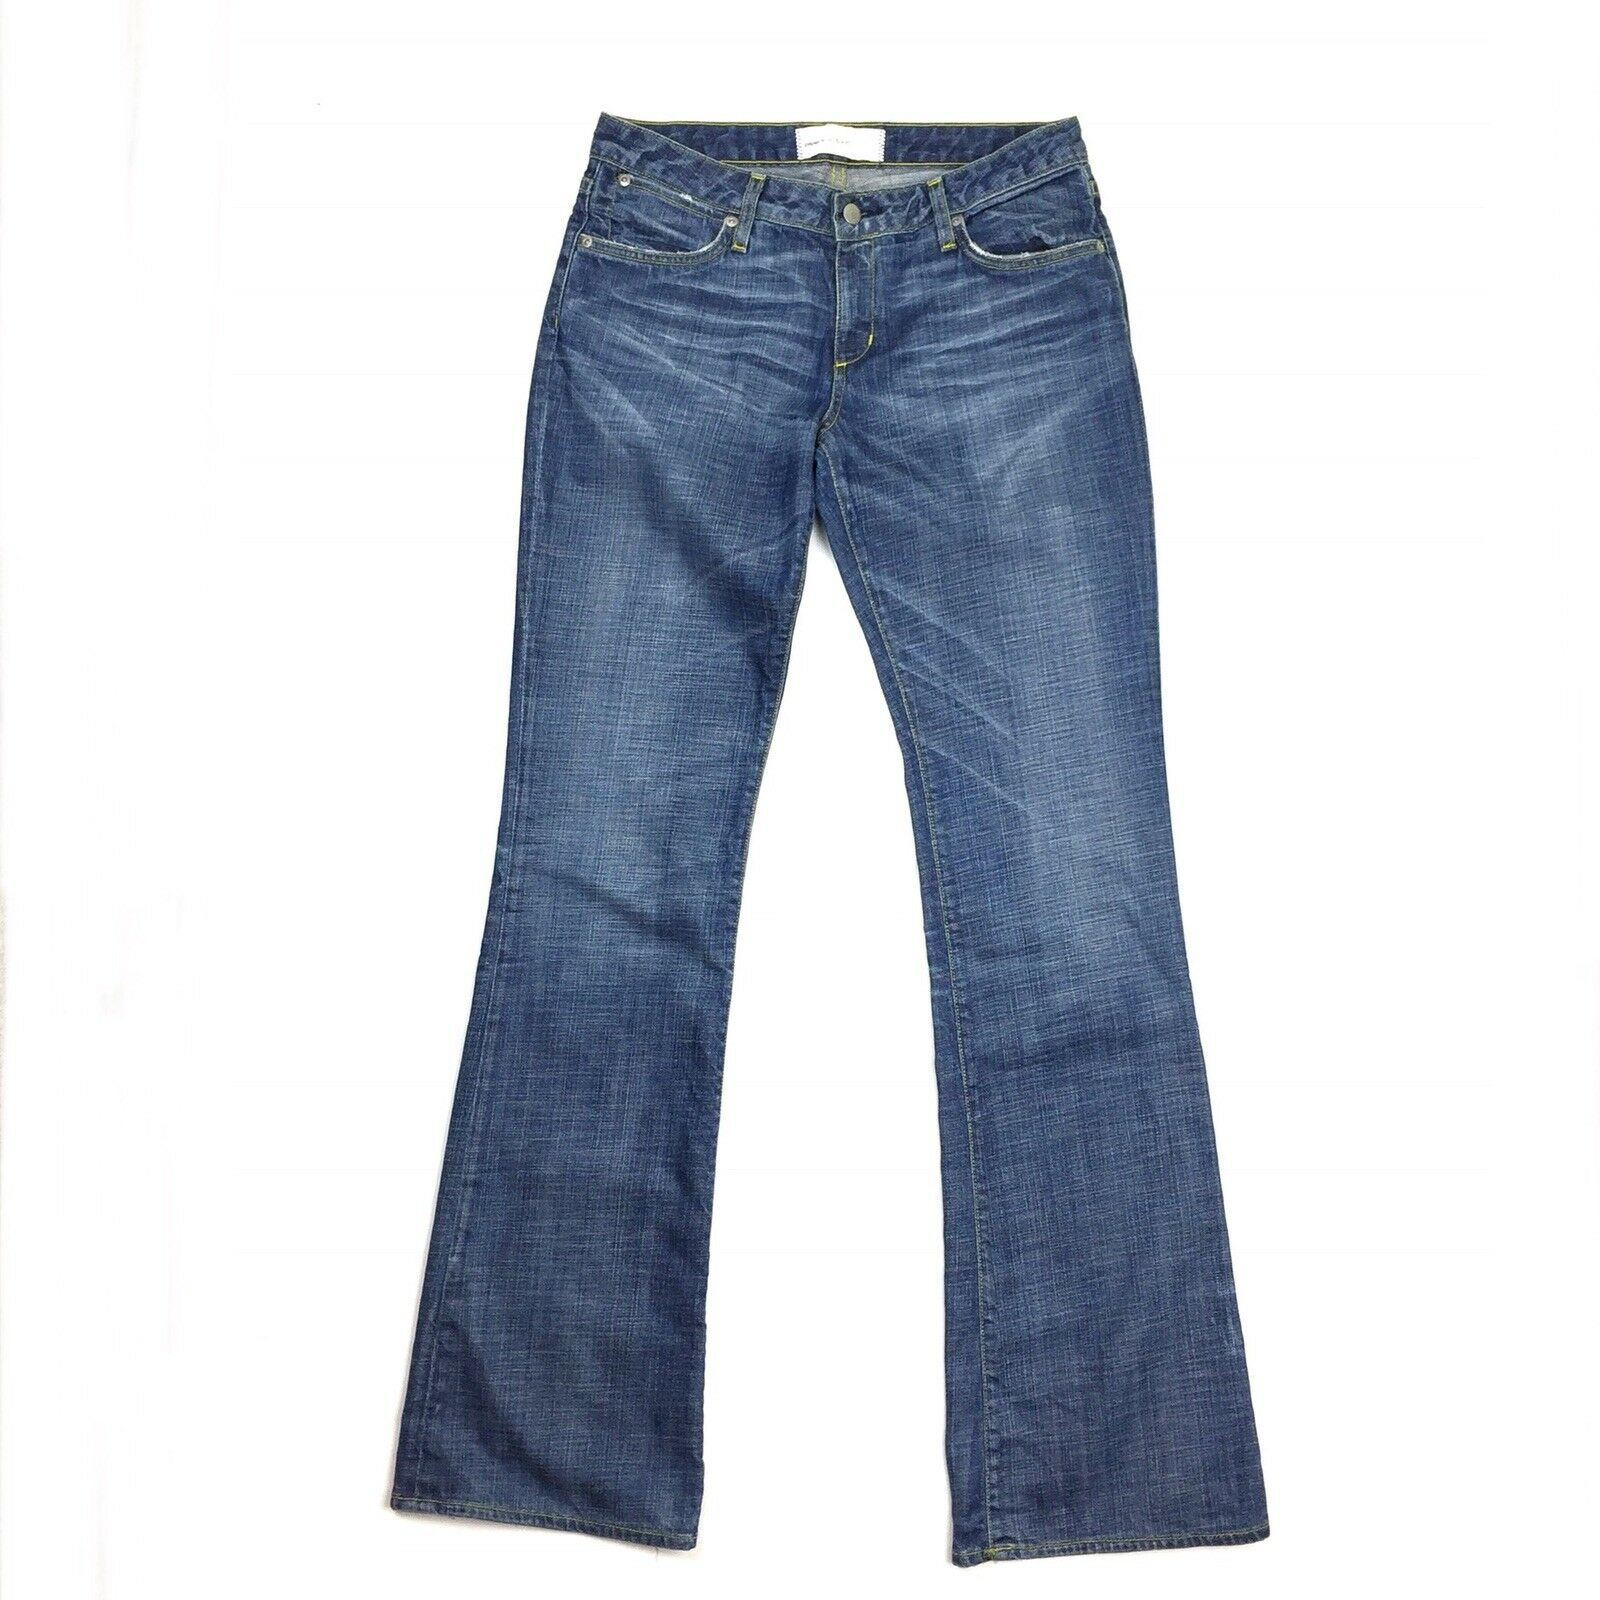 Paper Denim & Cloth Women's Jeans MADE IN USA low rise size 29 bluee